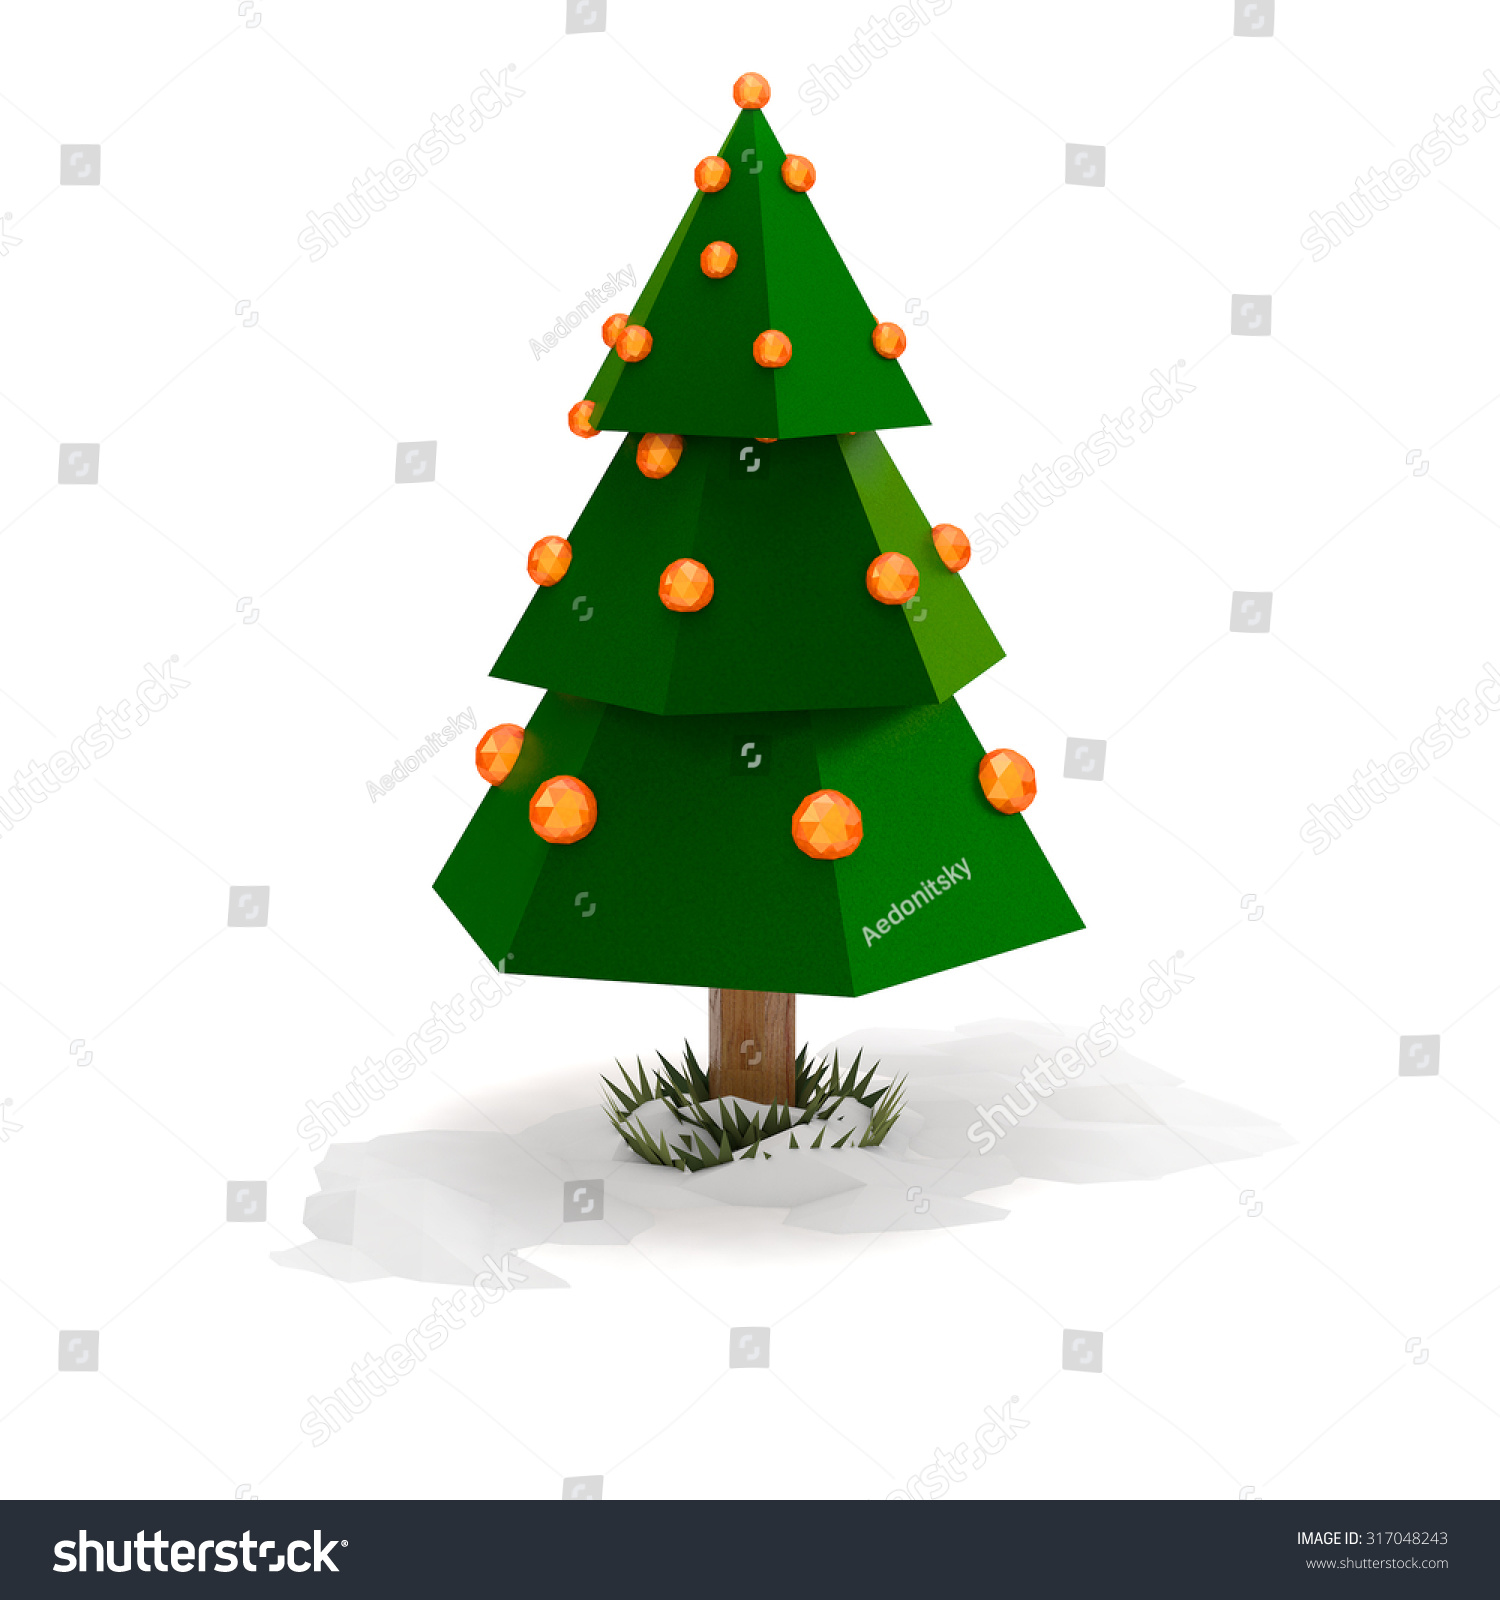 Christmas Tree With Decorations Low-Poly Illustration